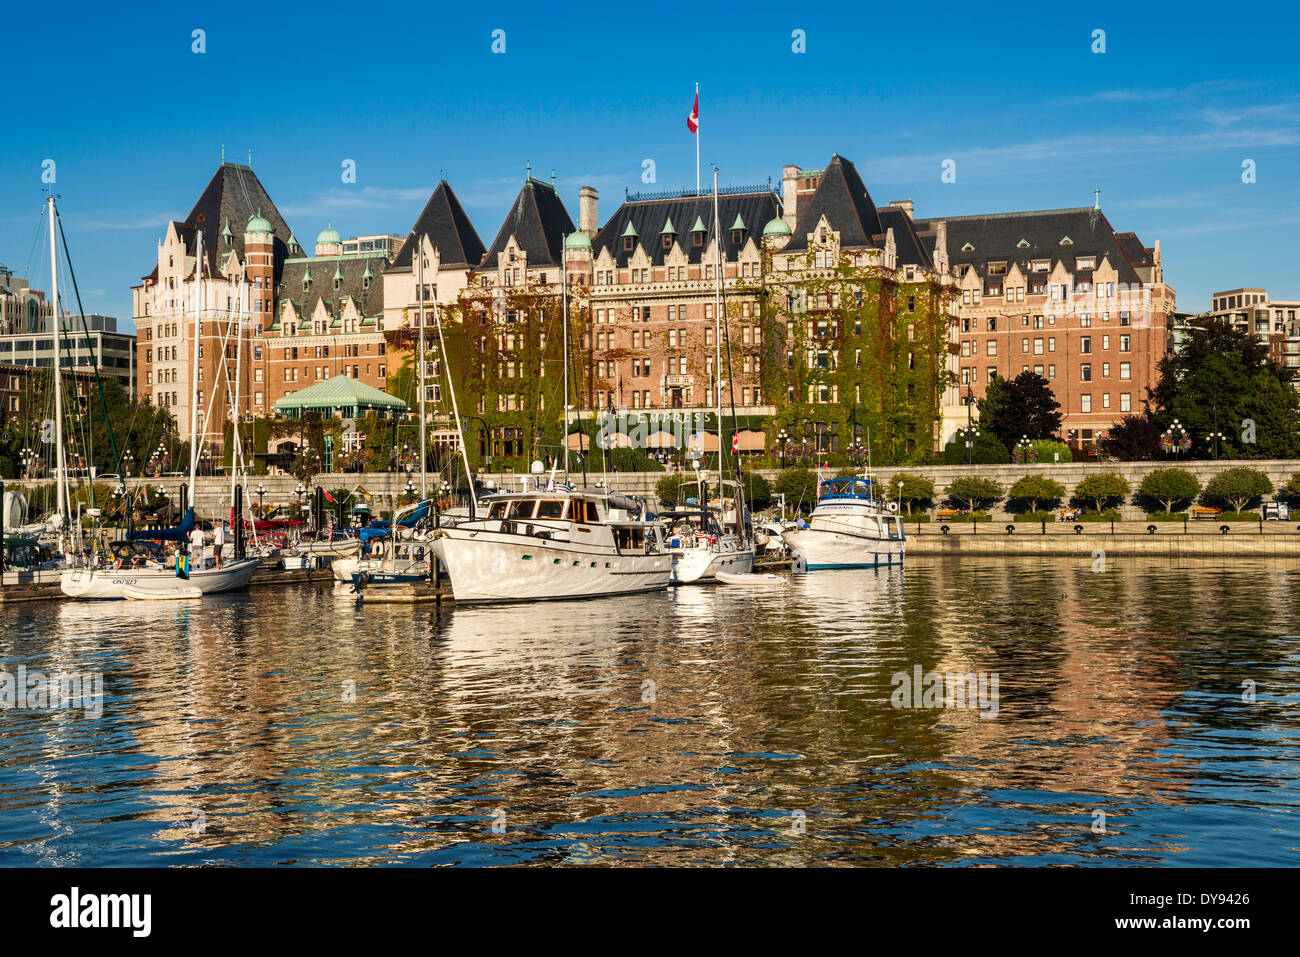 Fairmont Empress Hotel, marina, James Bay at The Inner Victoria Harbour, Victoria, Vancouver Island, British Columbia, Canada - Stock Image